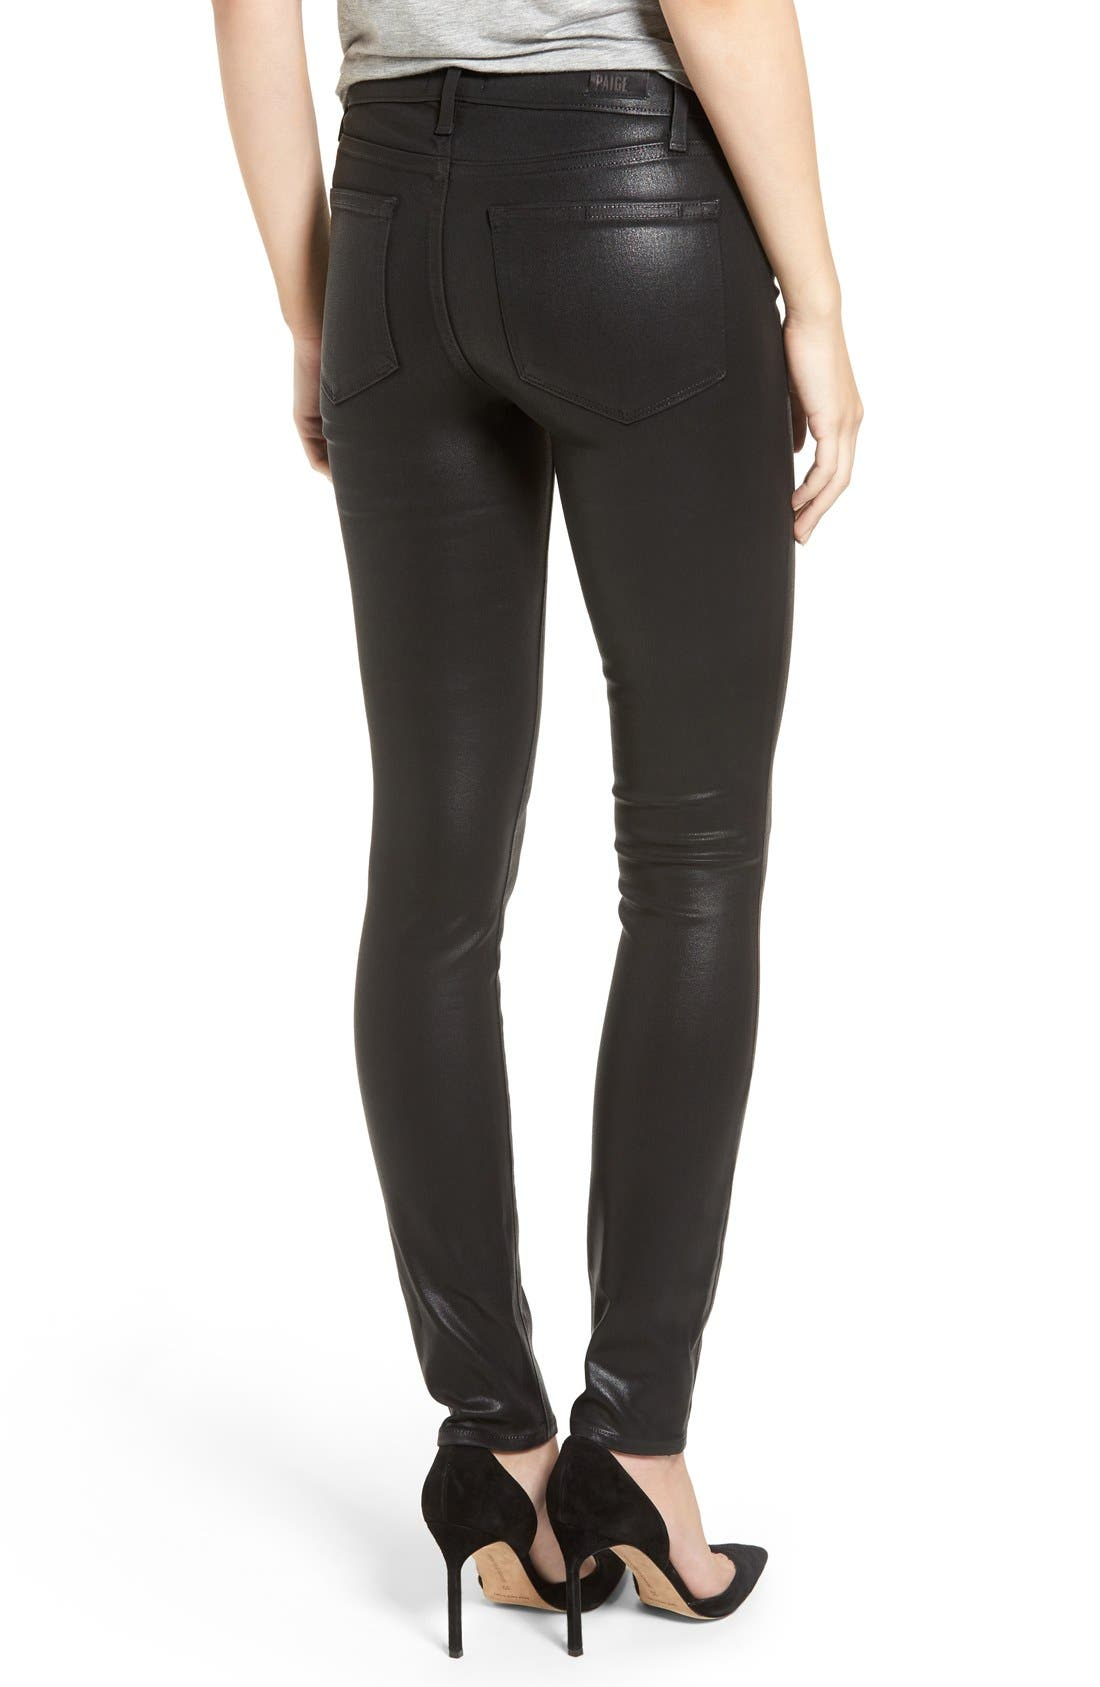 Alternate Image 2  - PAIGE Verdugo Coated Ankle Skinny Jeans (Black Fog Luxe Coated) (Nordstrom Exclusive)